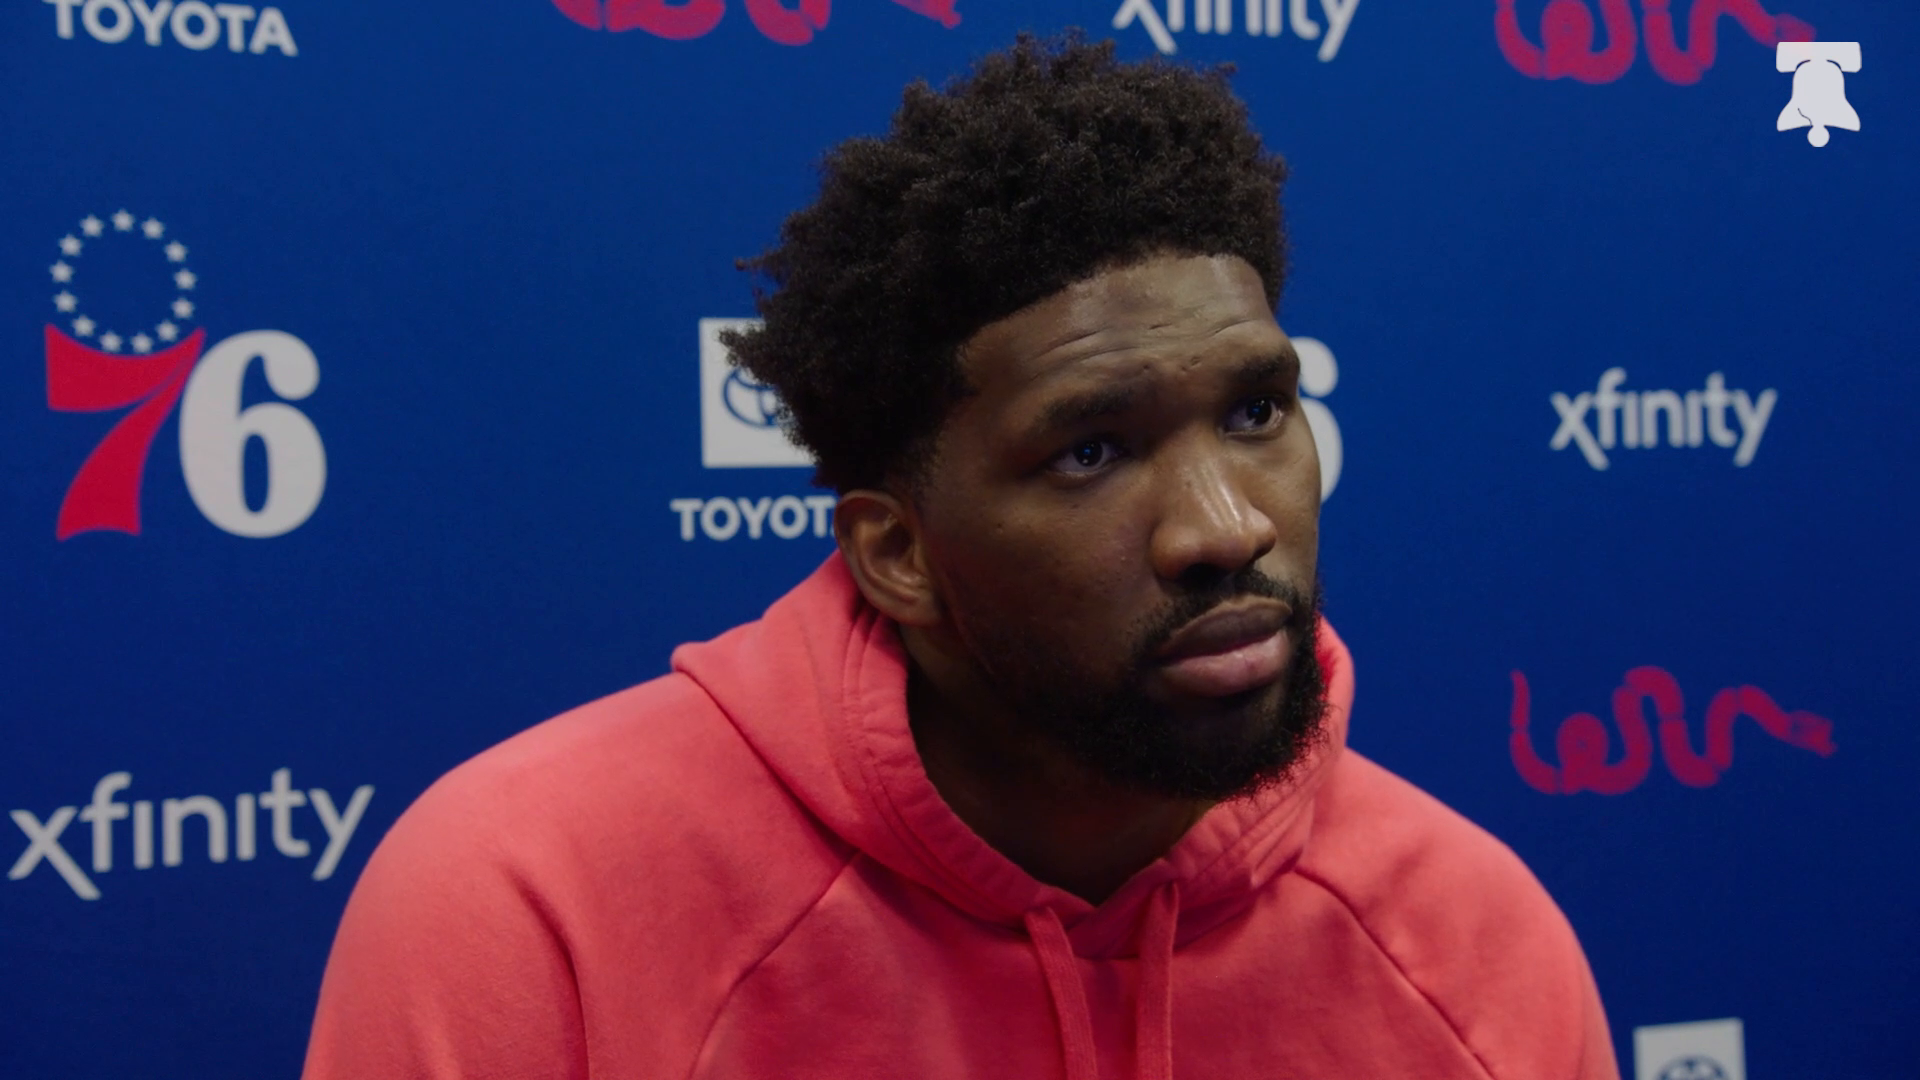 Joel Embiid | Postgame Media vs Los Angeles Clippers (04.16.21)